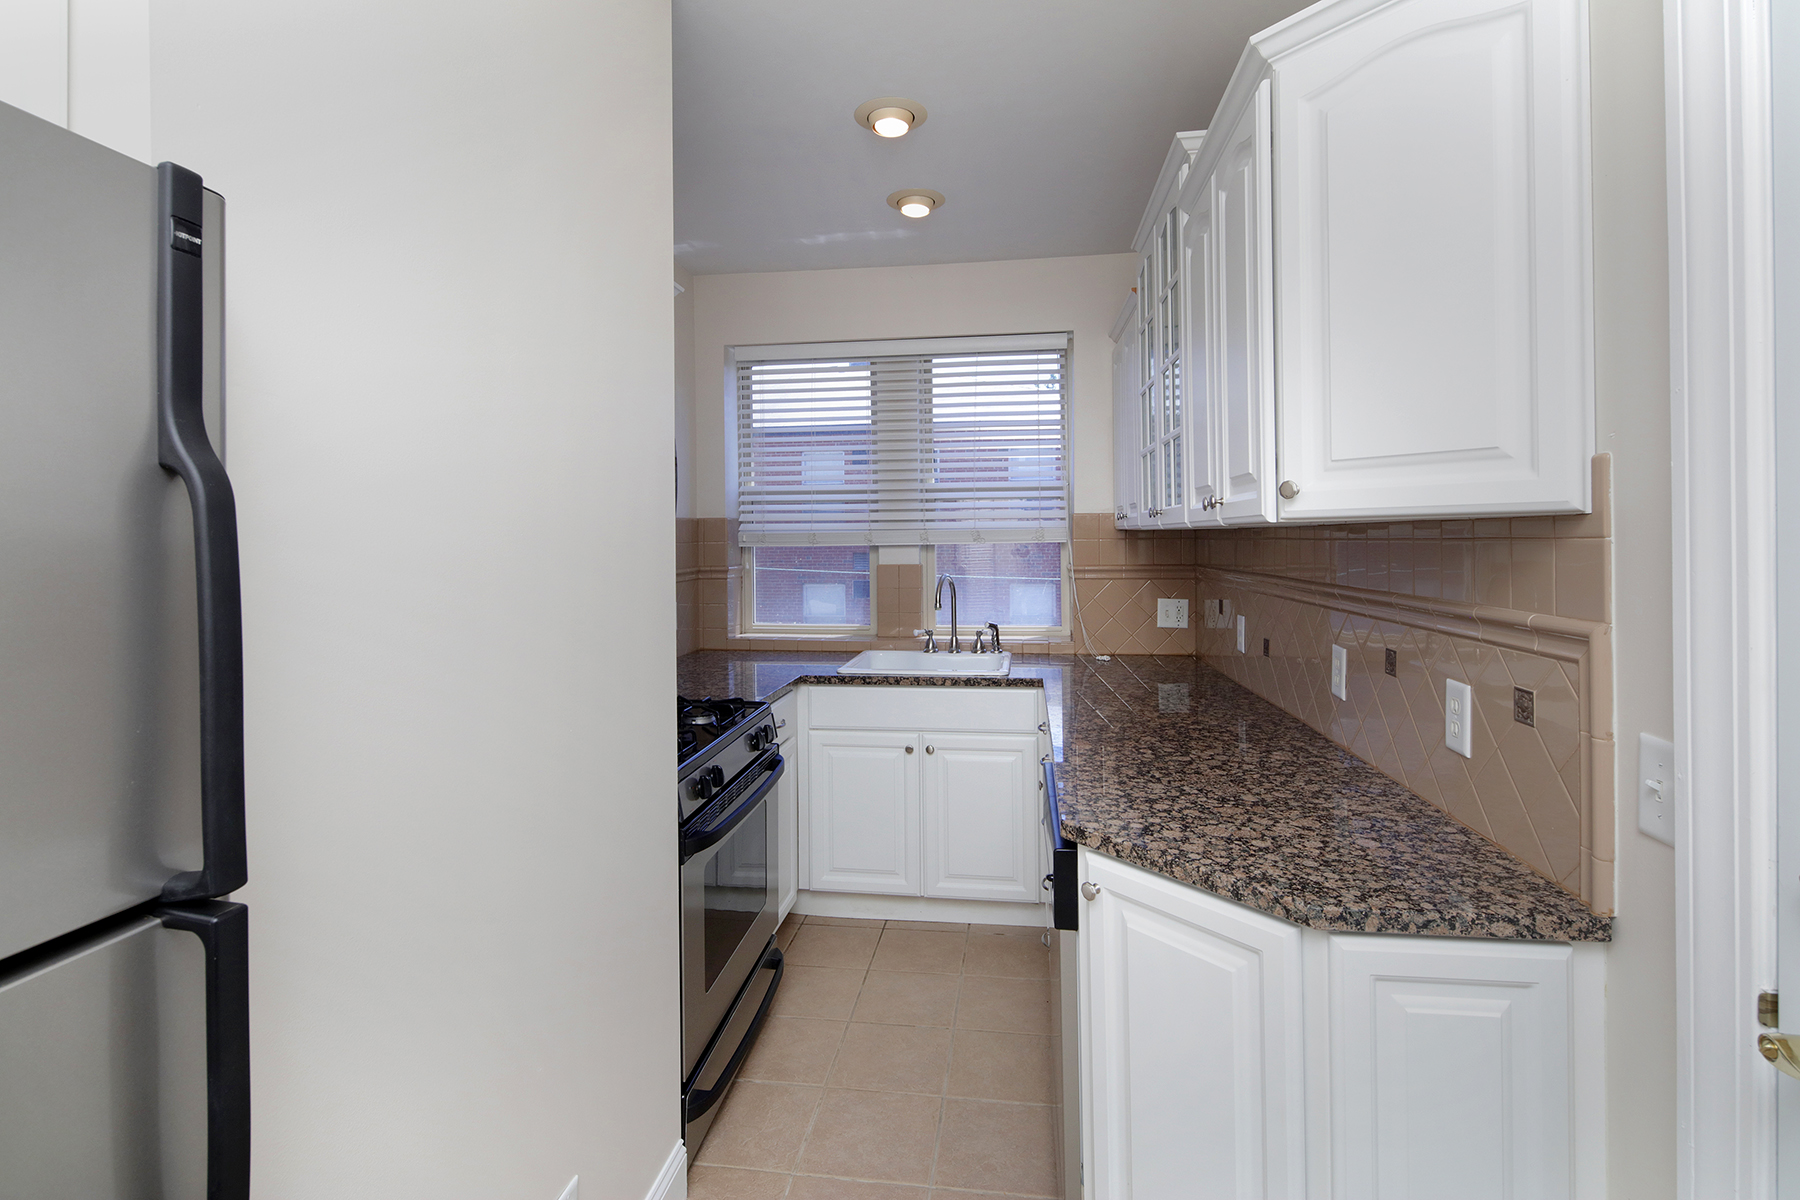 1 Bed Small Kitchen